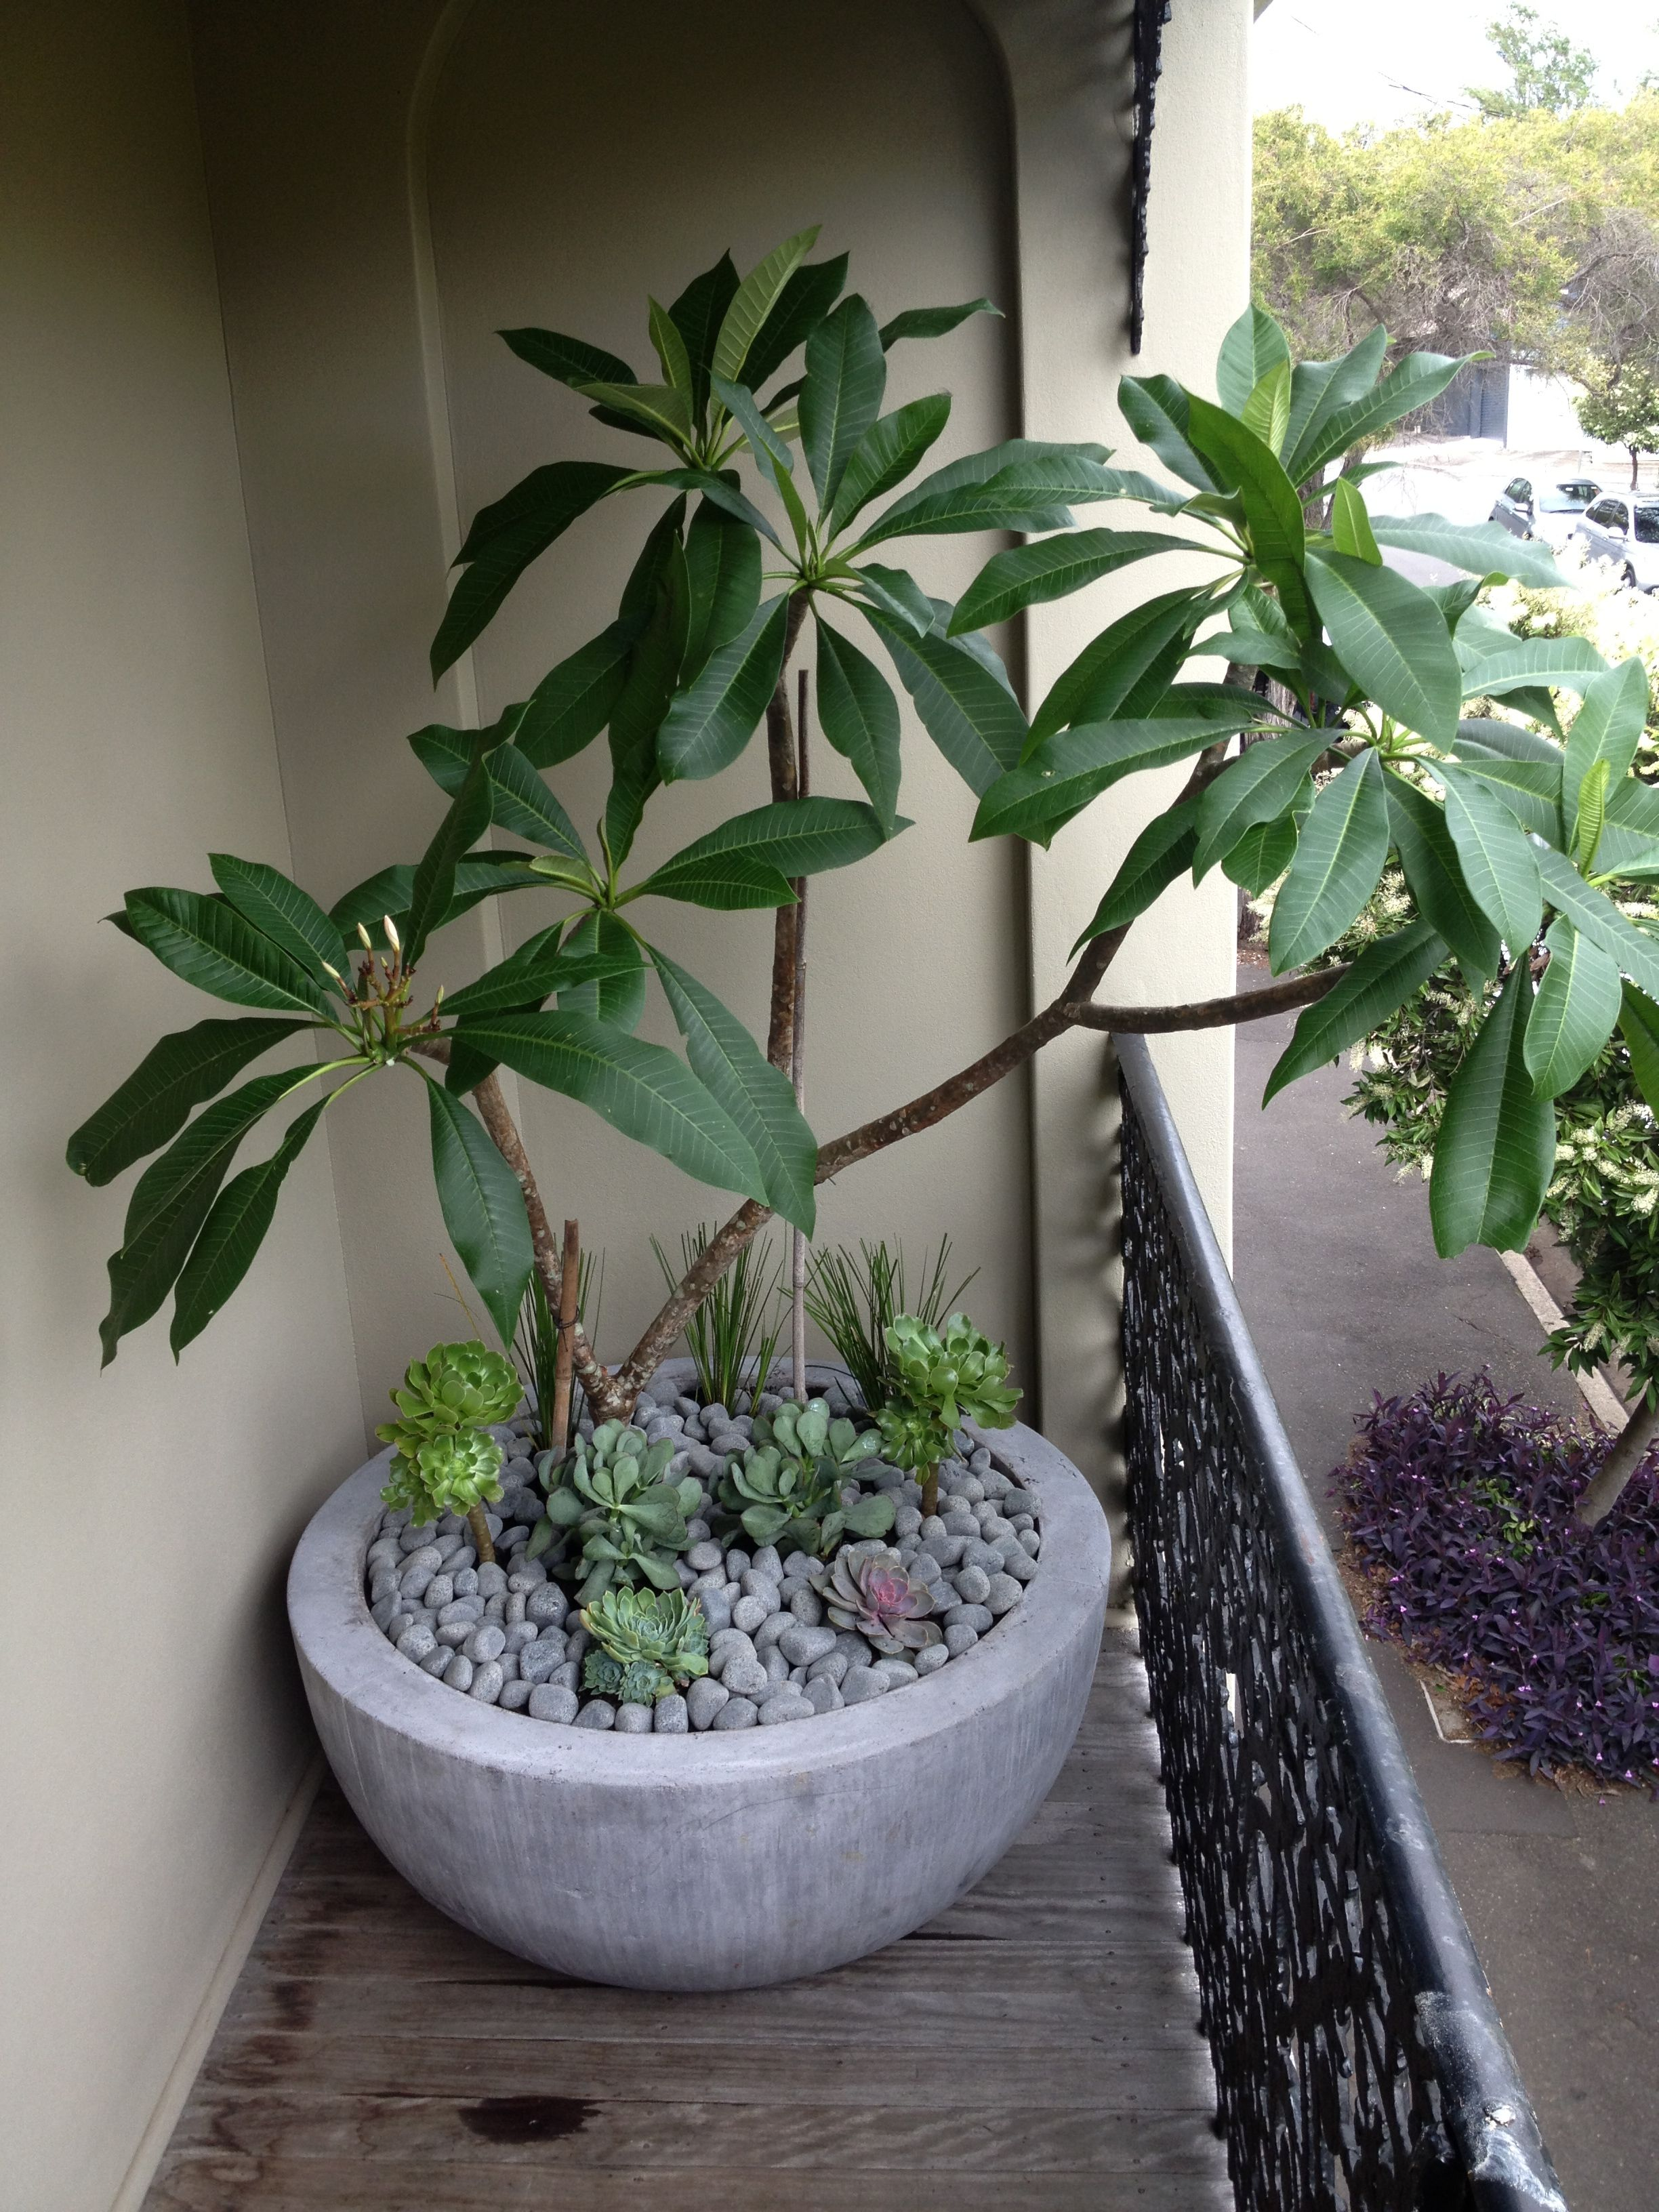 Frangipani In Balcony Planter Add Succulents For Extra